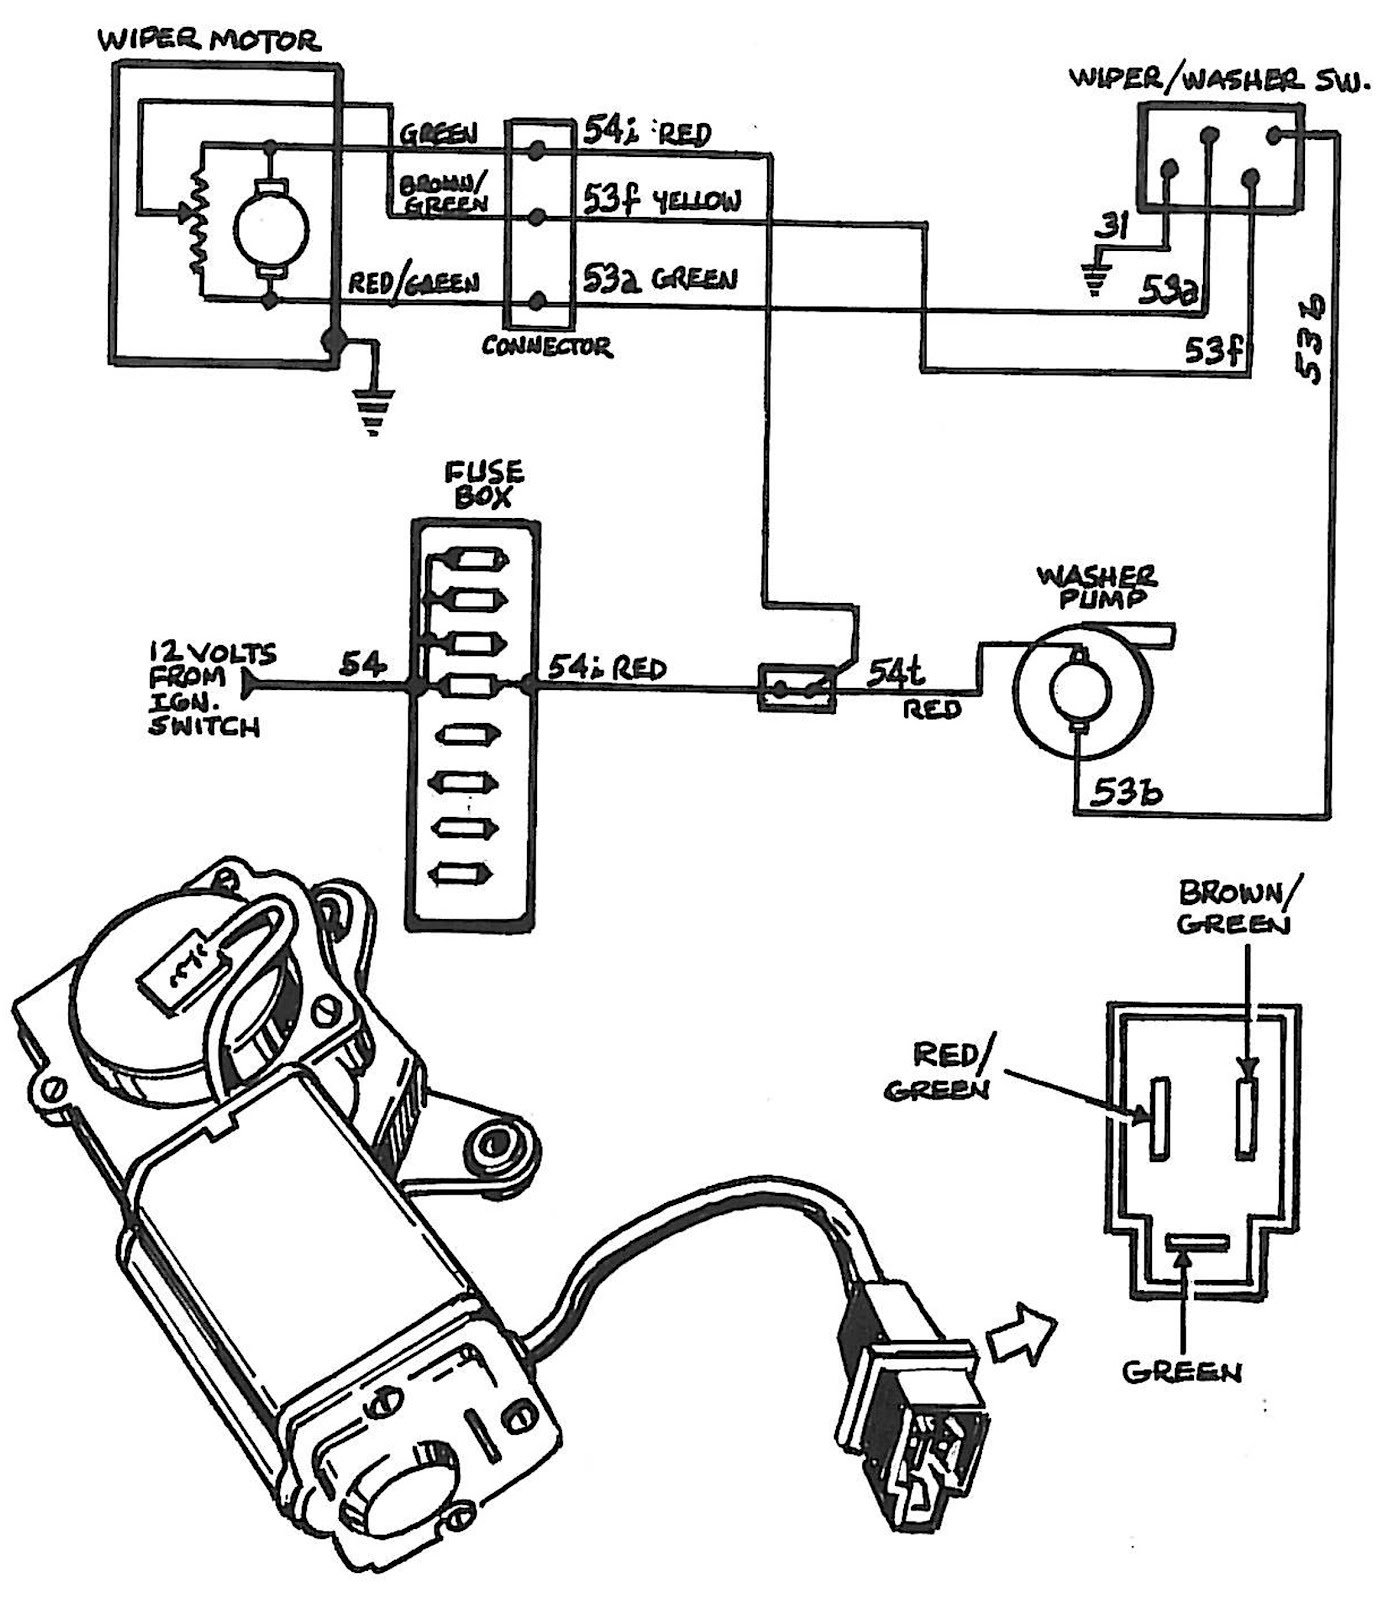 chevy windshield wiper motor wiring diagram CgTTPww jaguar wiring diagram jaguar free wiring diagrams readingrat net 1996 jaguar xj6 fuse box diagram at honlapkeszites.co